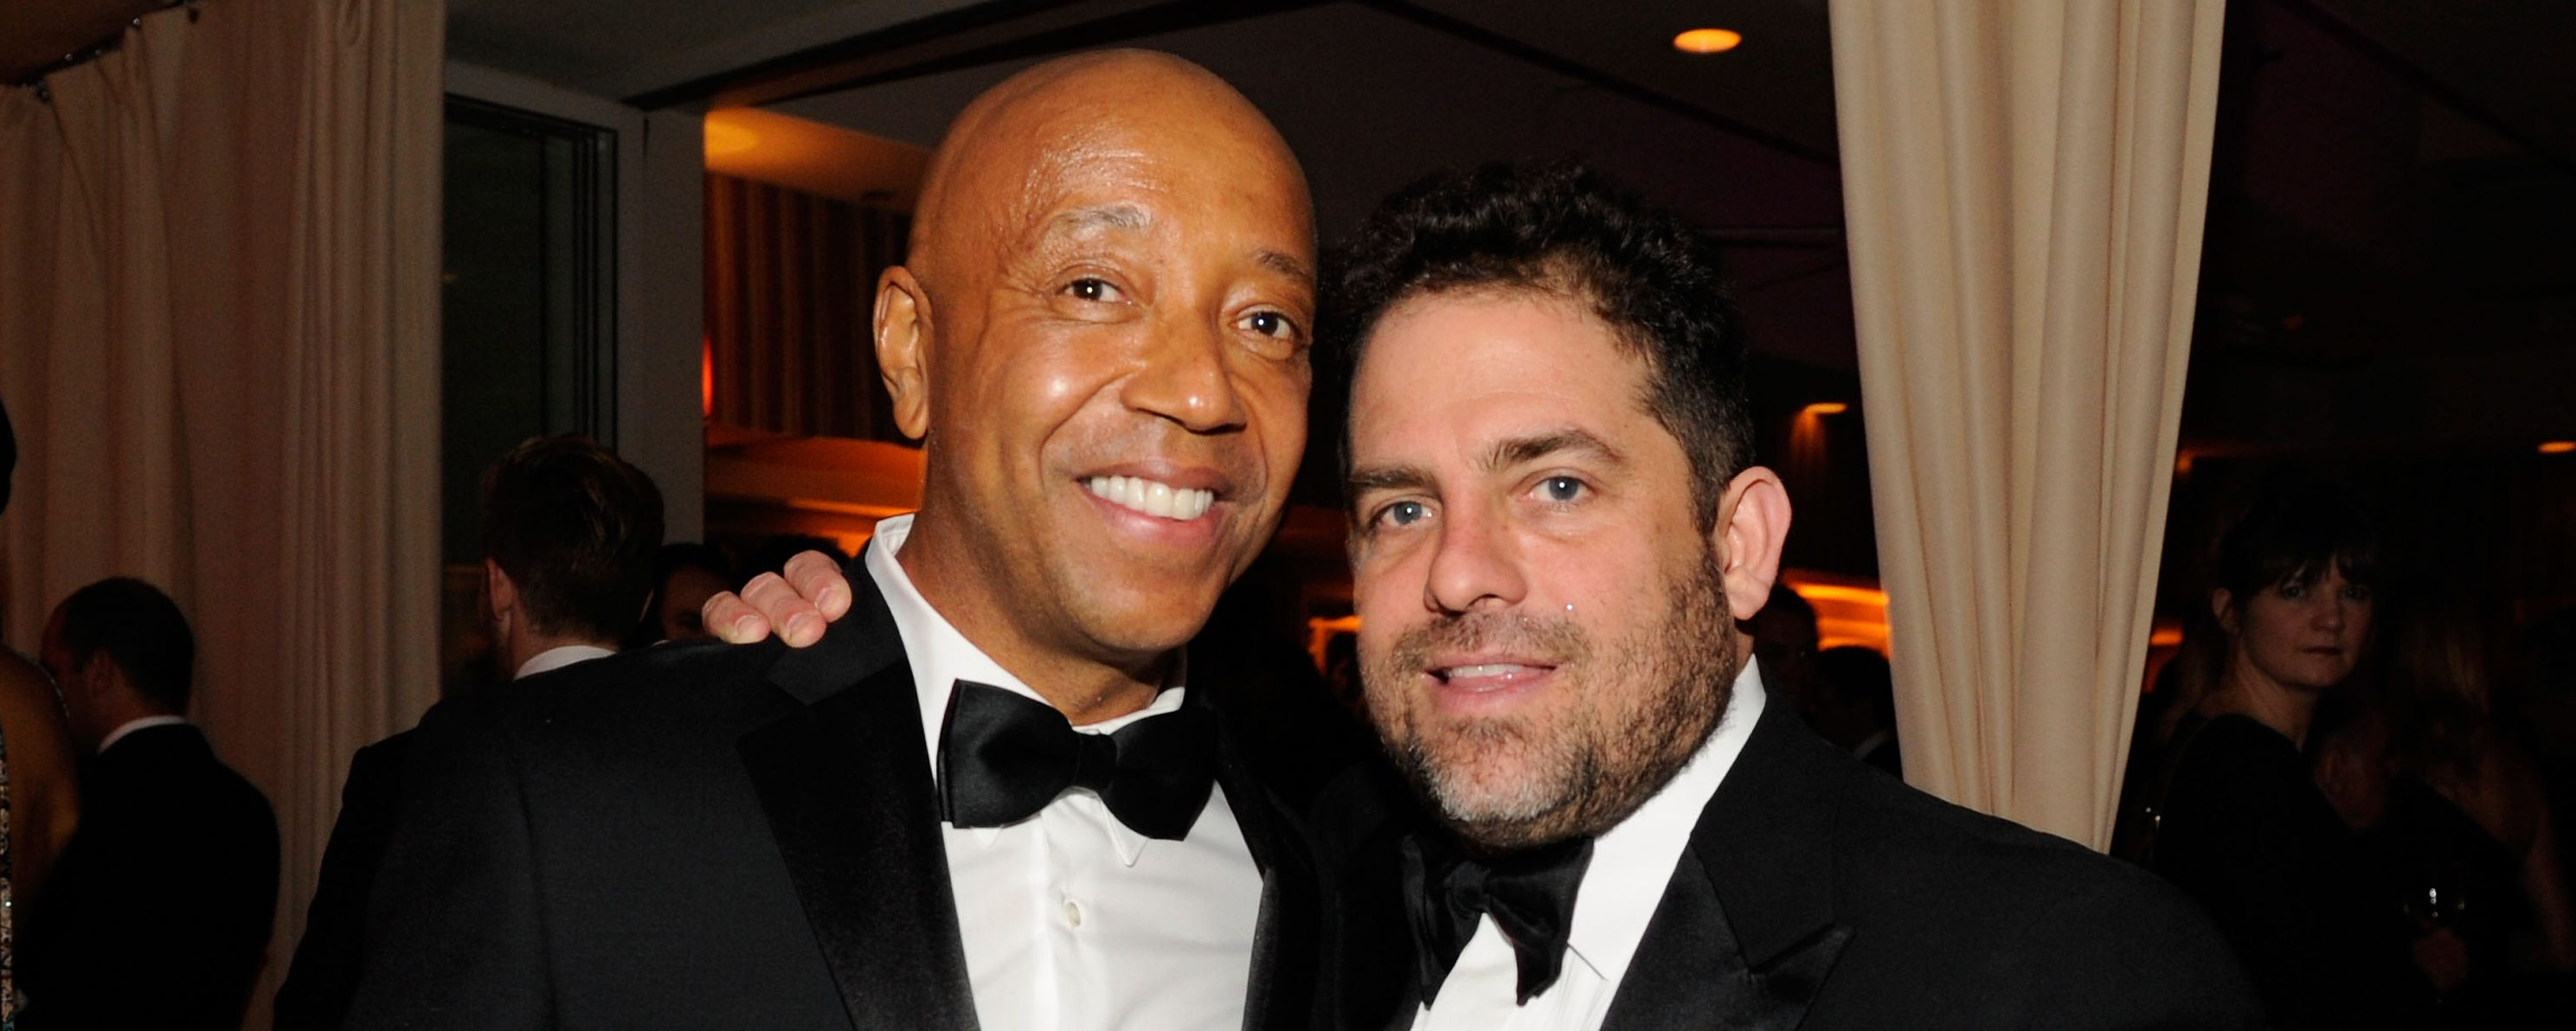 Russell Simmons Accused of Sexually Assaulting Teen Model… While Brett Ratner Watched